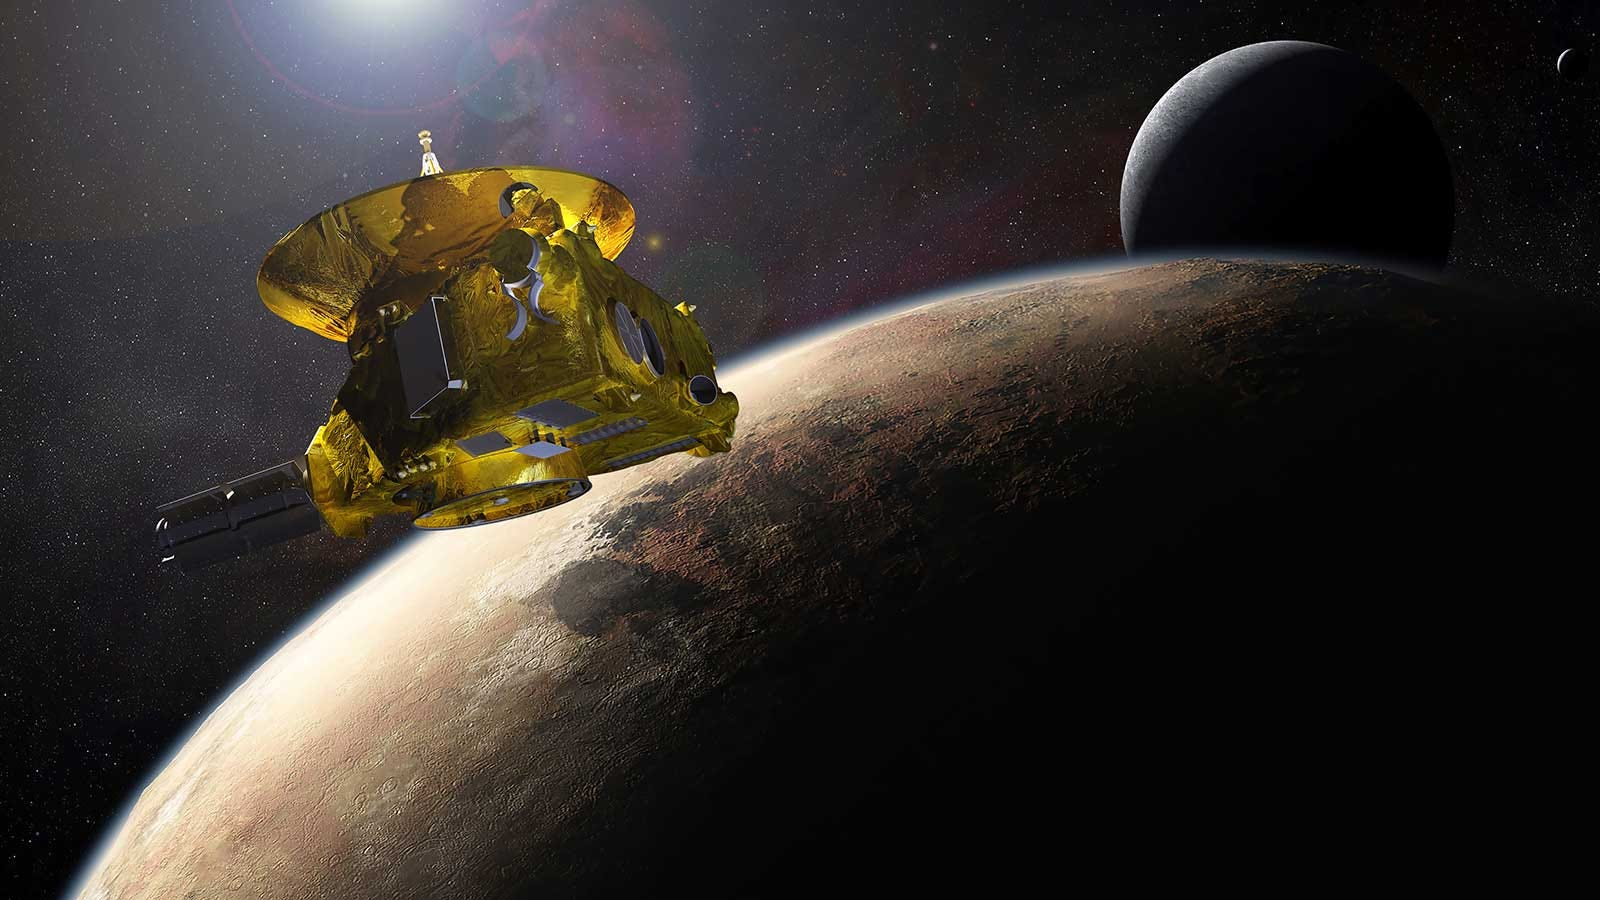 An artist's rendering of the New Horizons space probe approaching Pluto.